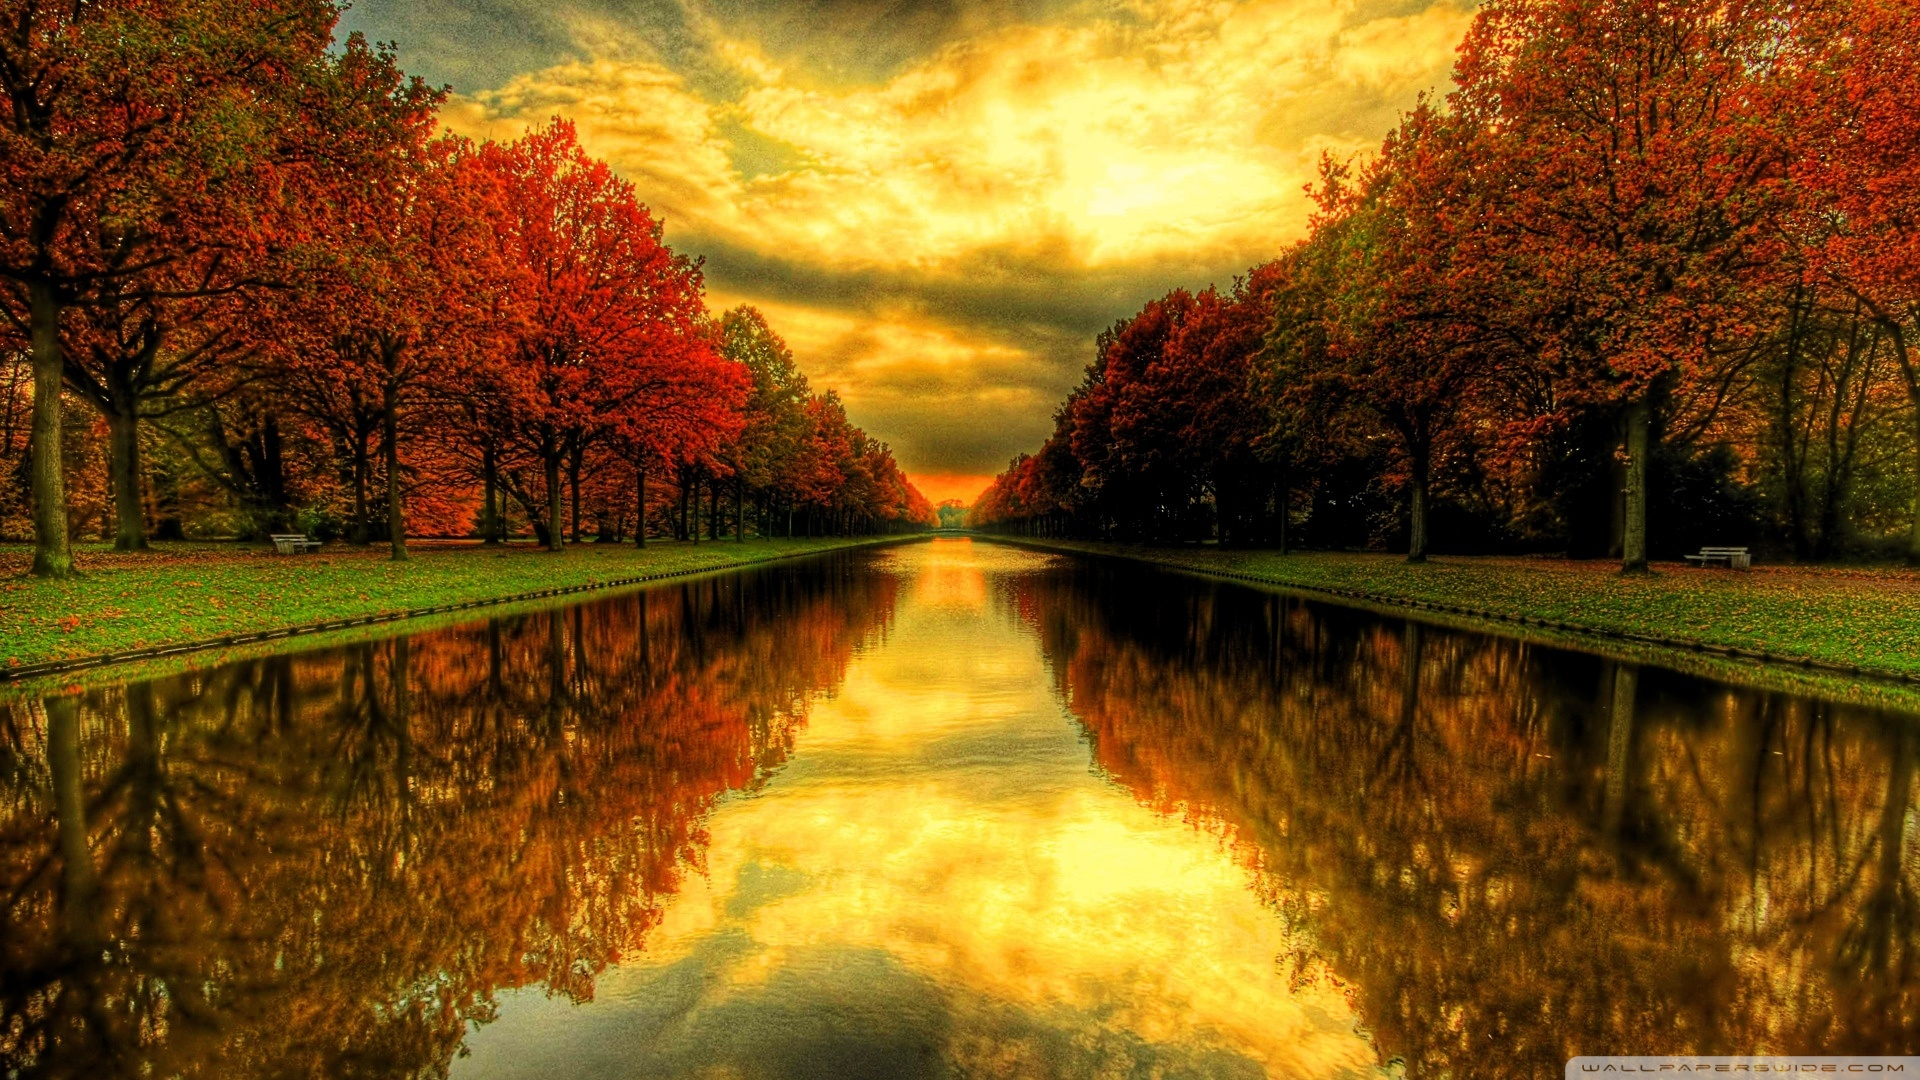 Collection of Autumn Desktop Backgrounds Hd on HDWallpapers